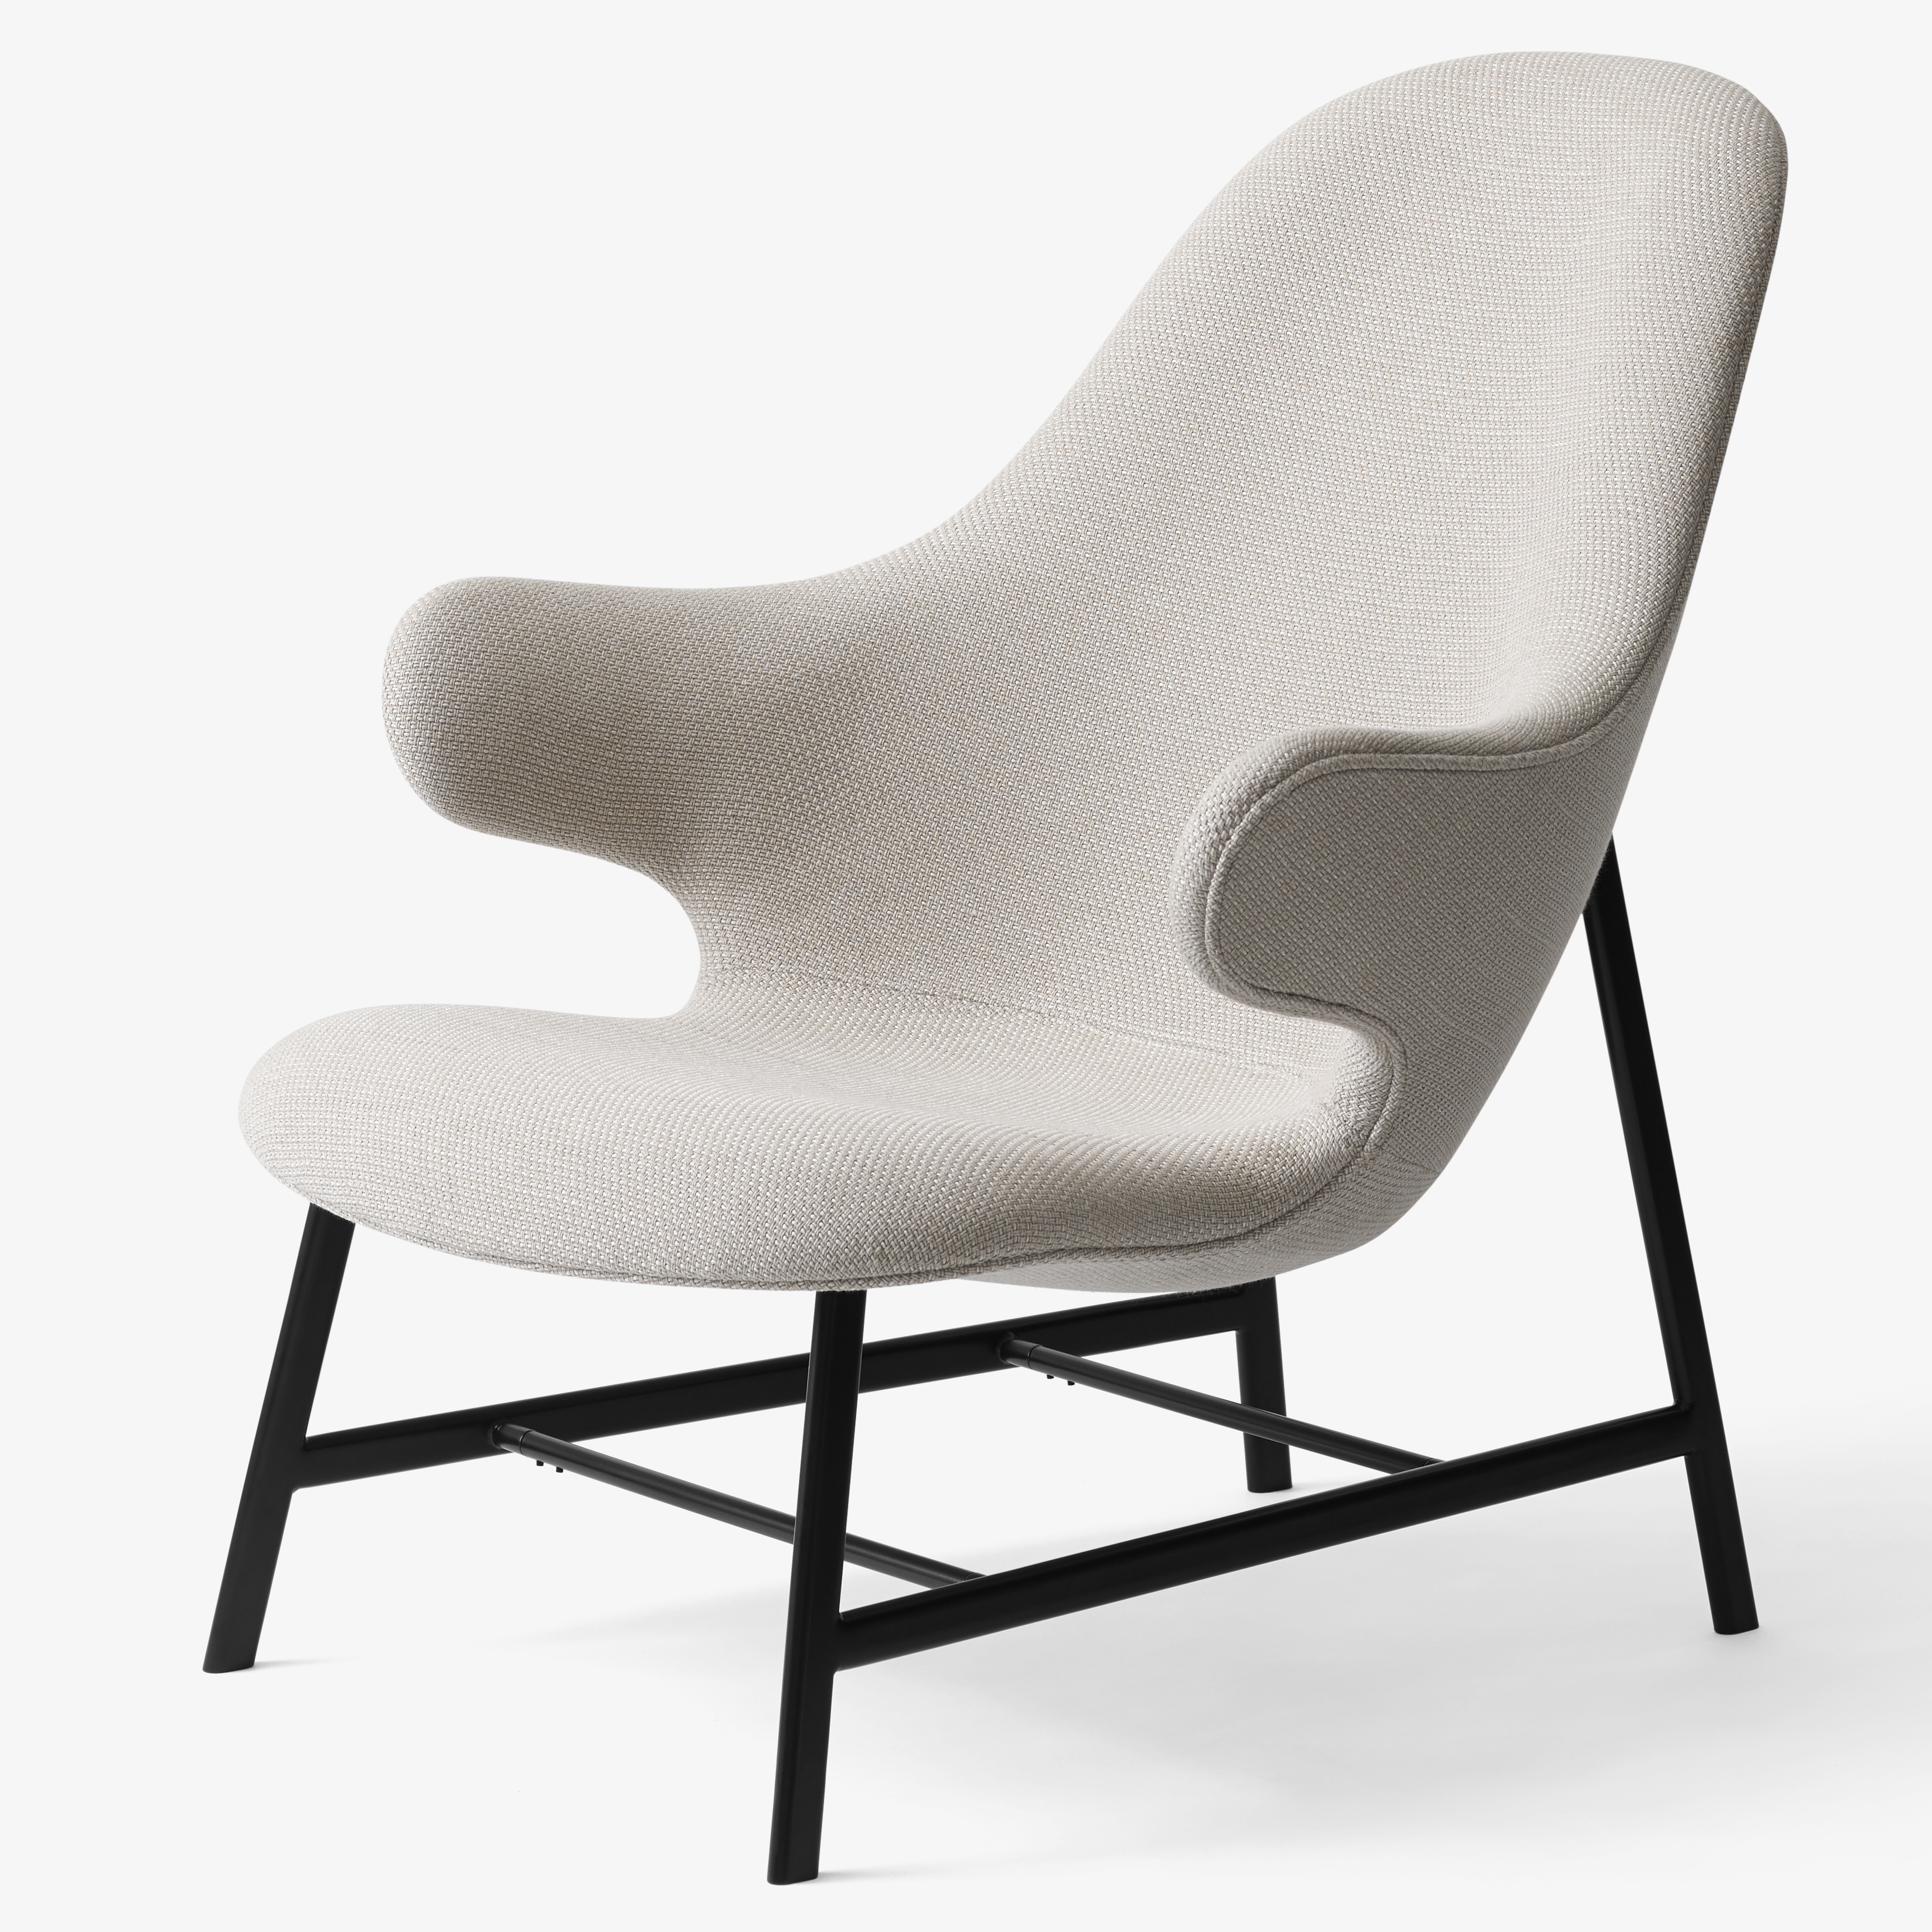 Amp Tradition Catch Lounge Chair Jaime Hayon